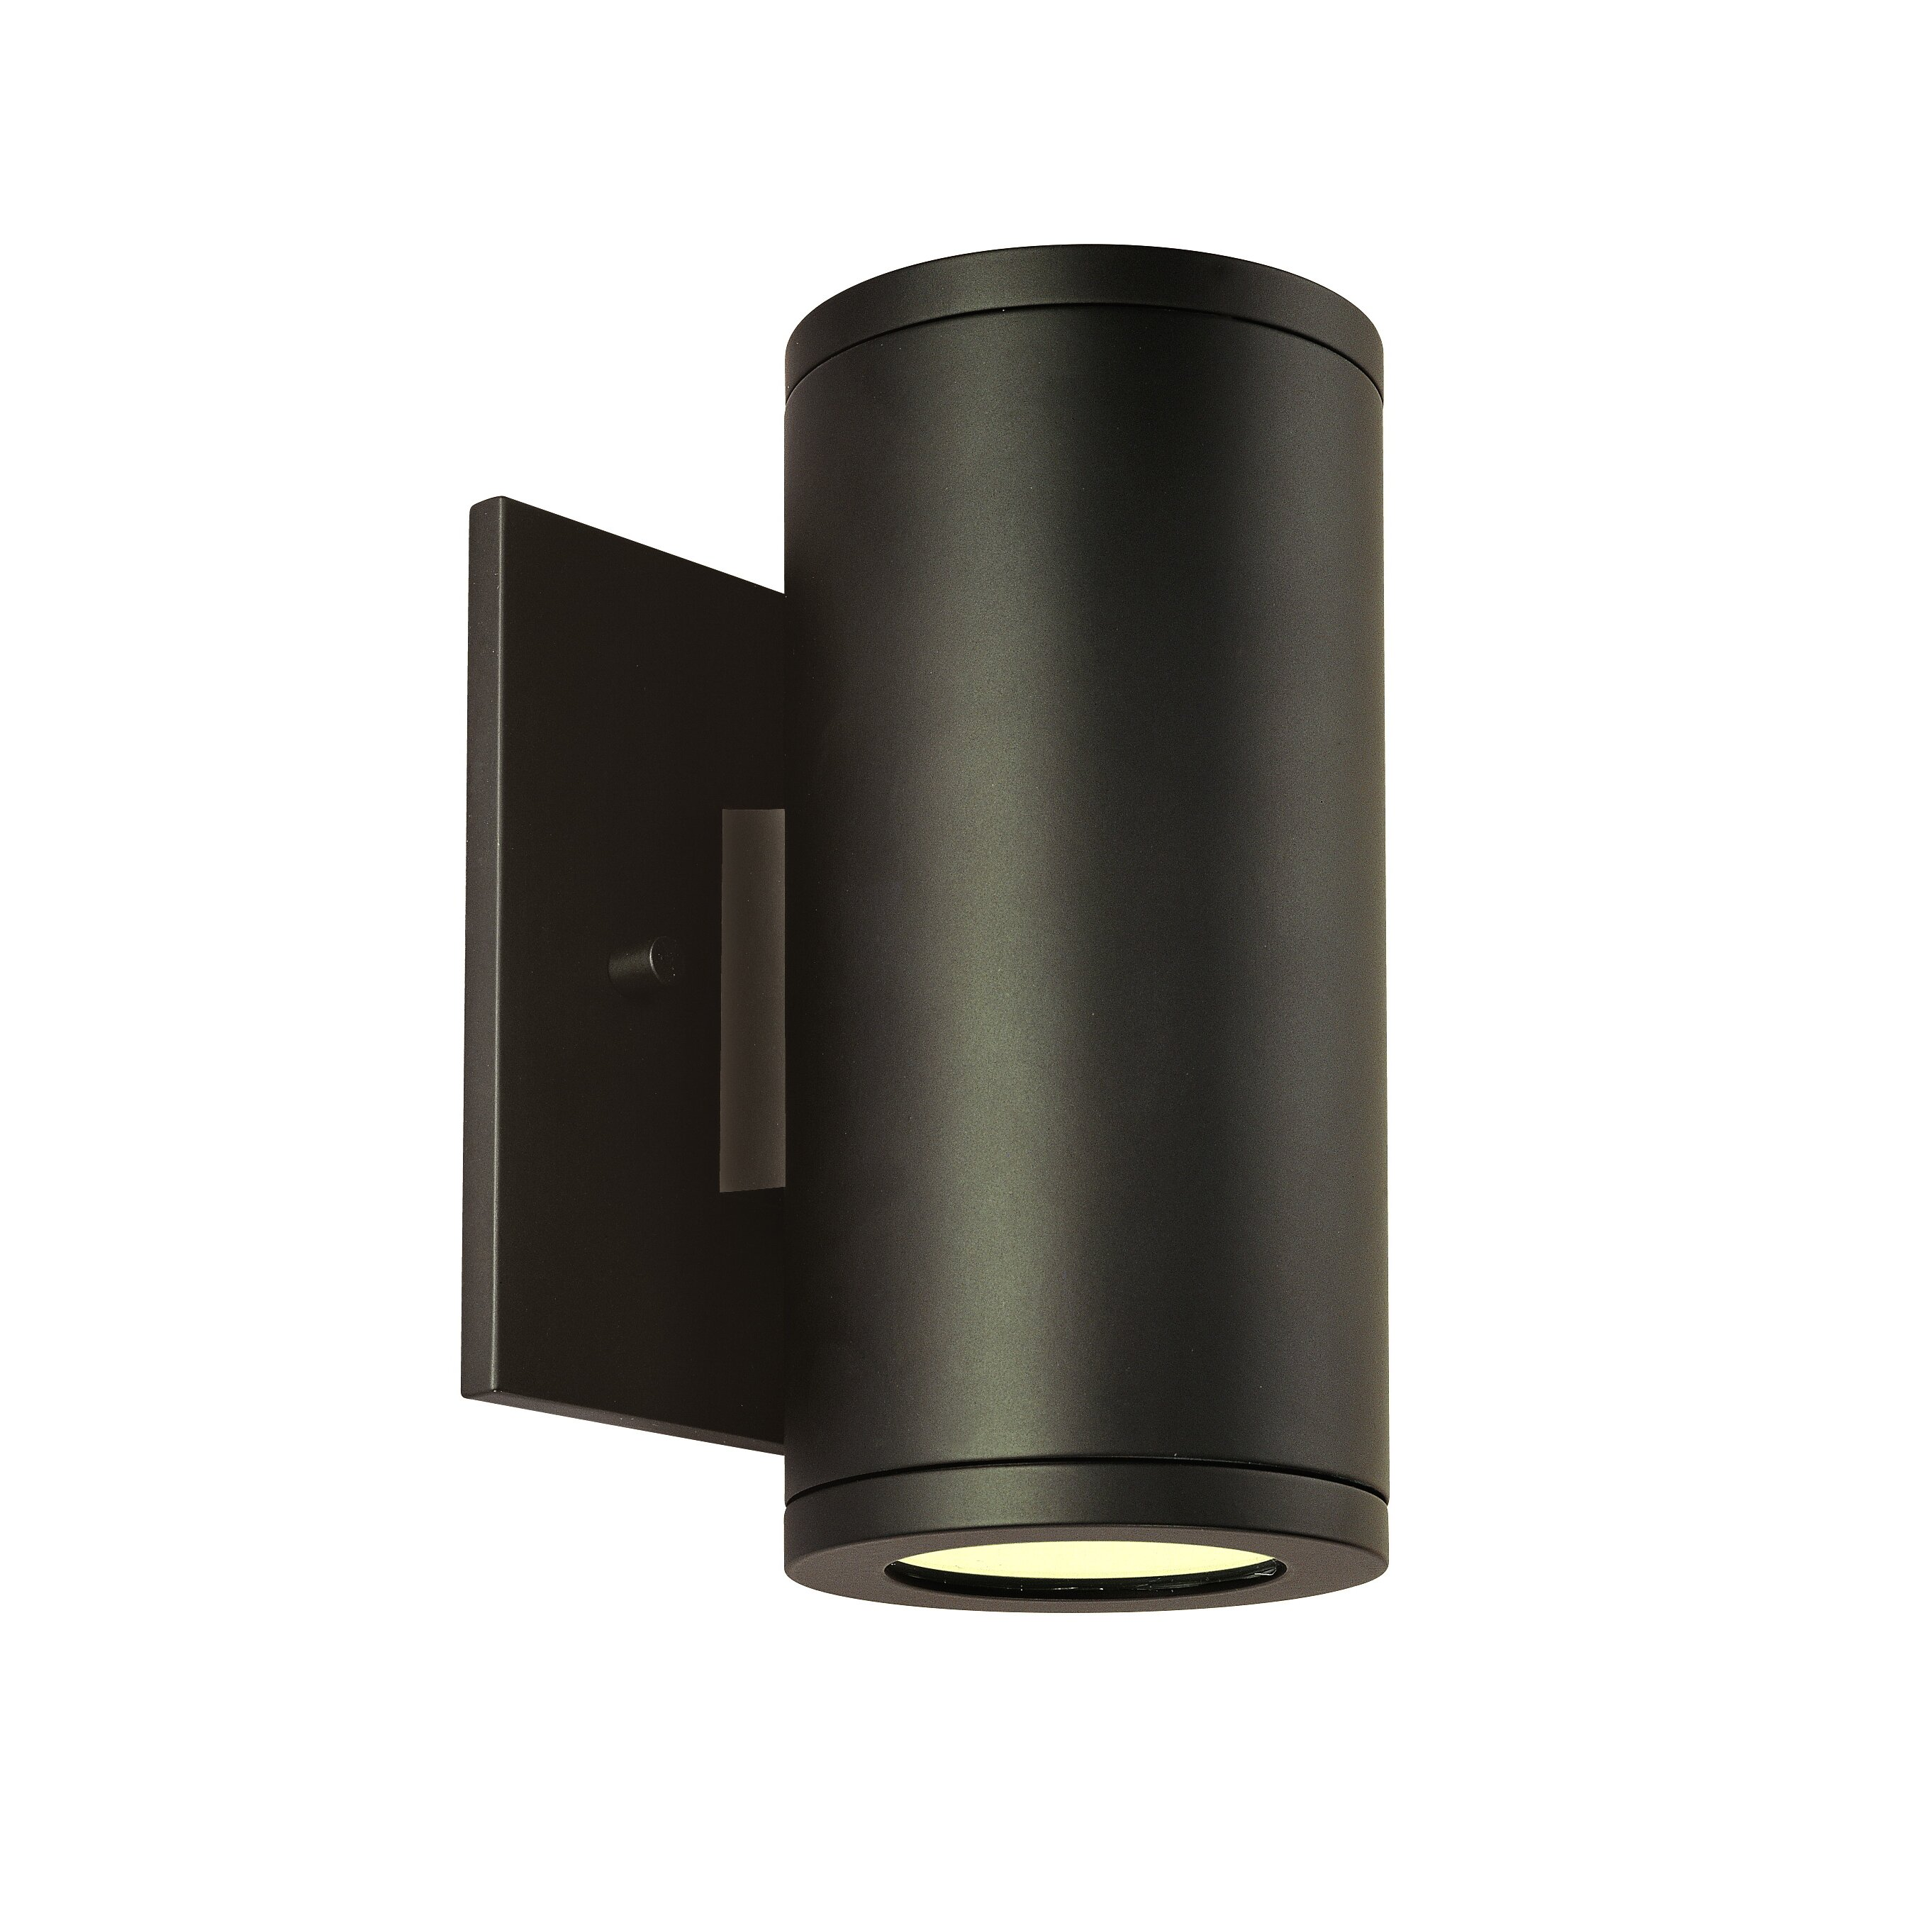 Csl silo sconce reviews wayfair - Exterior wall mount light fixtures ...